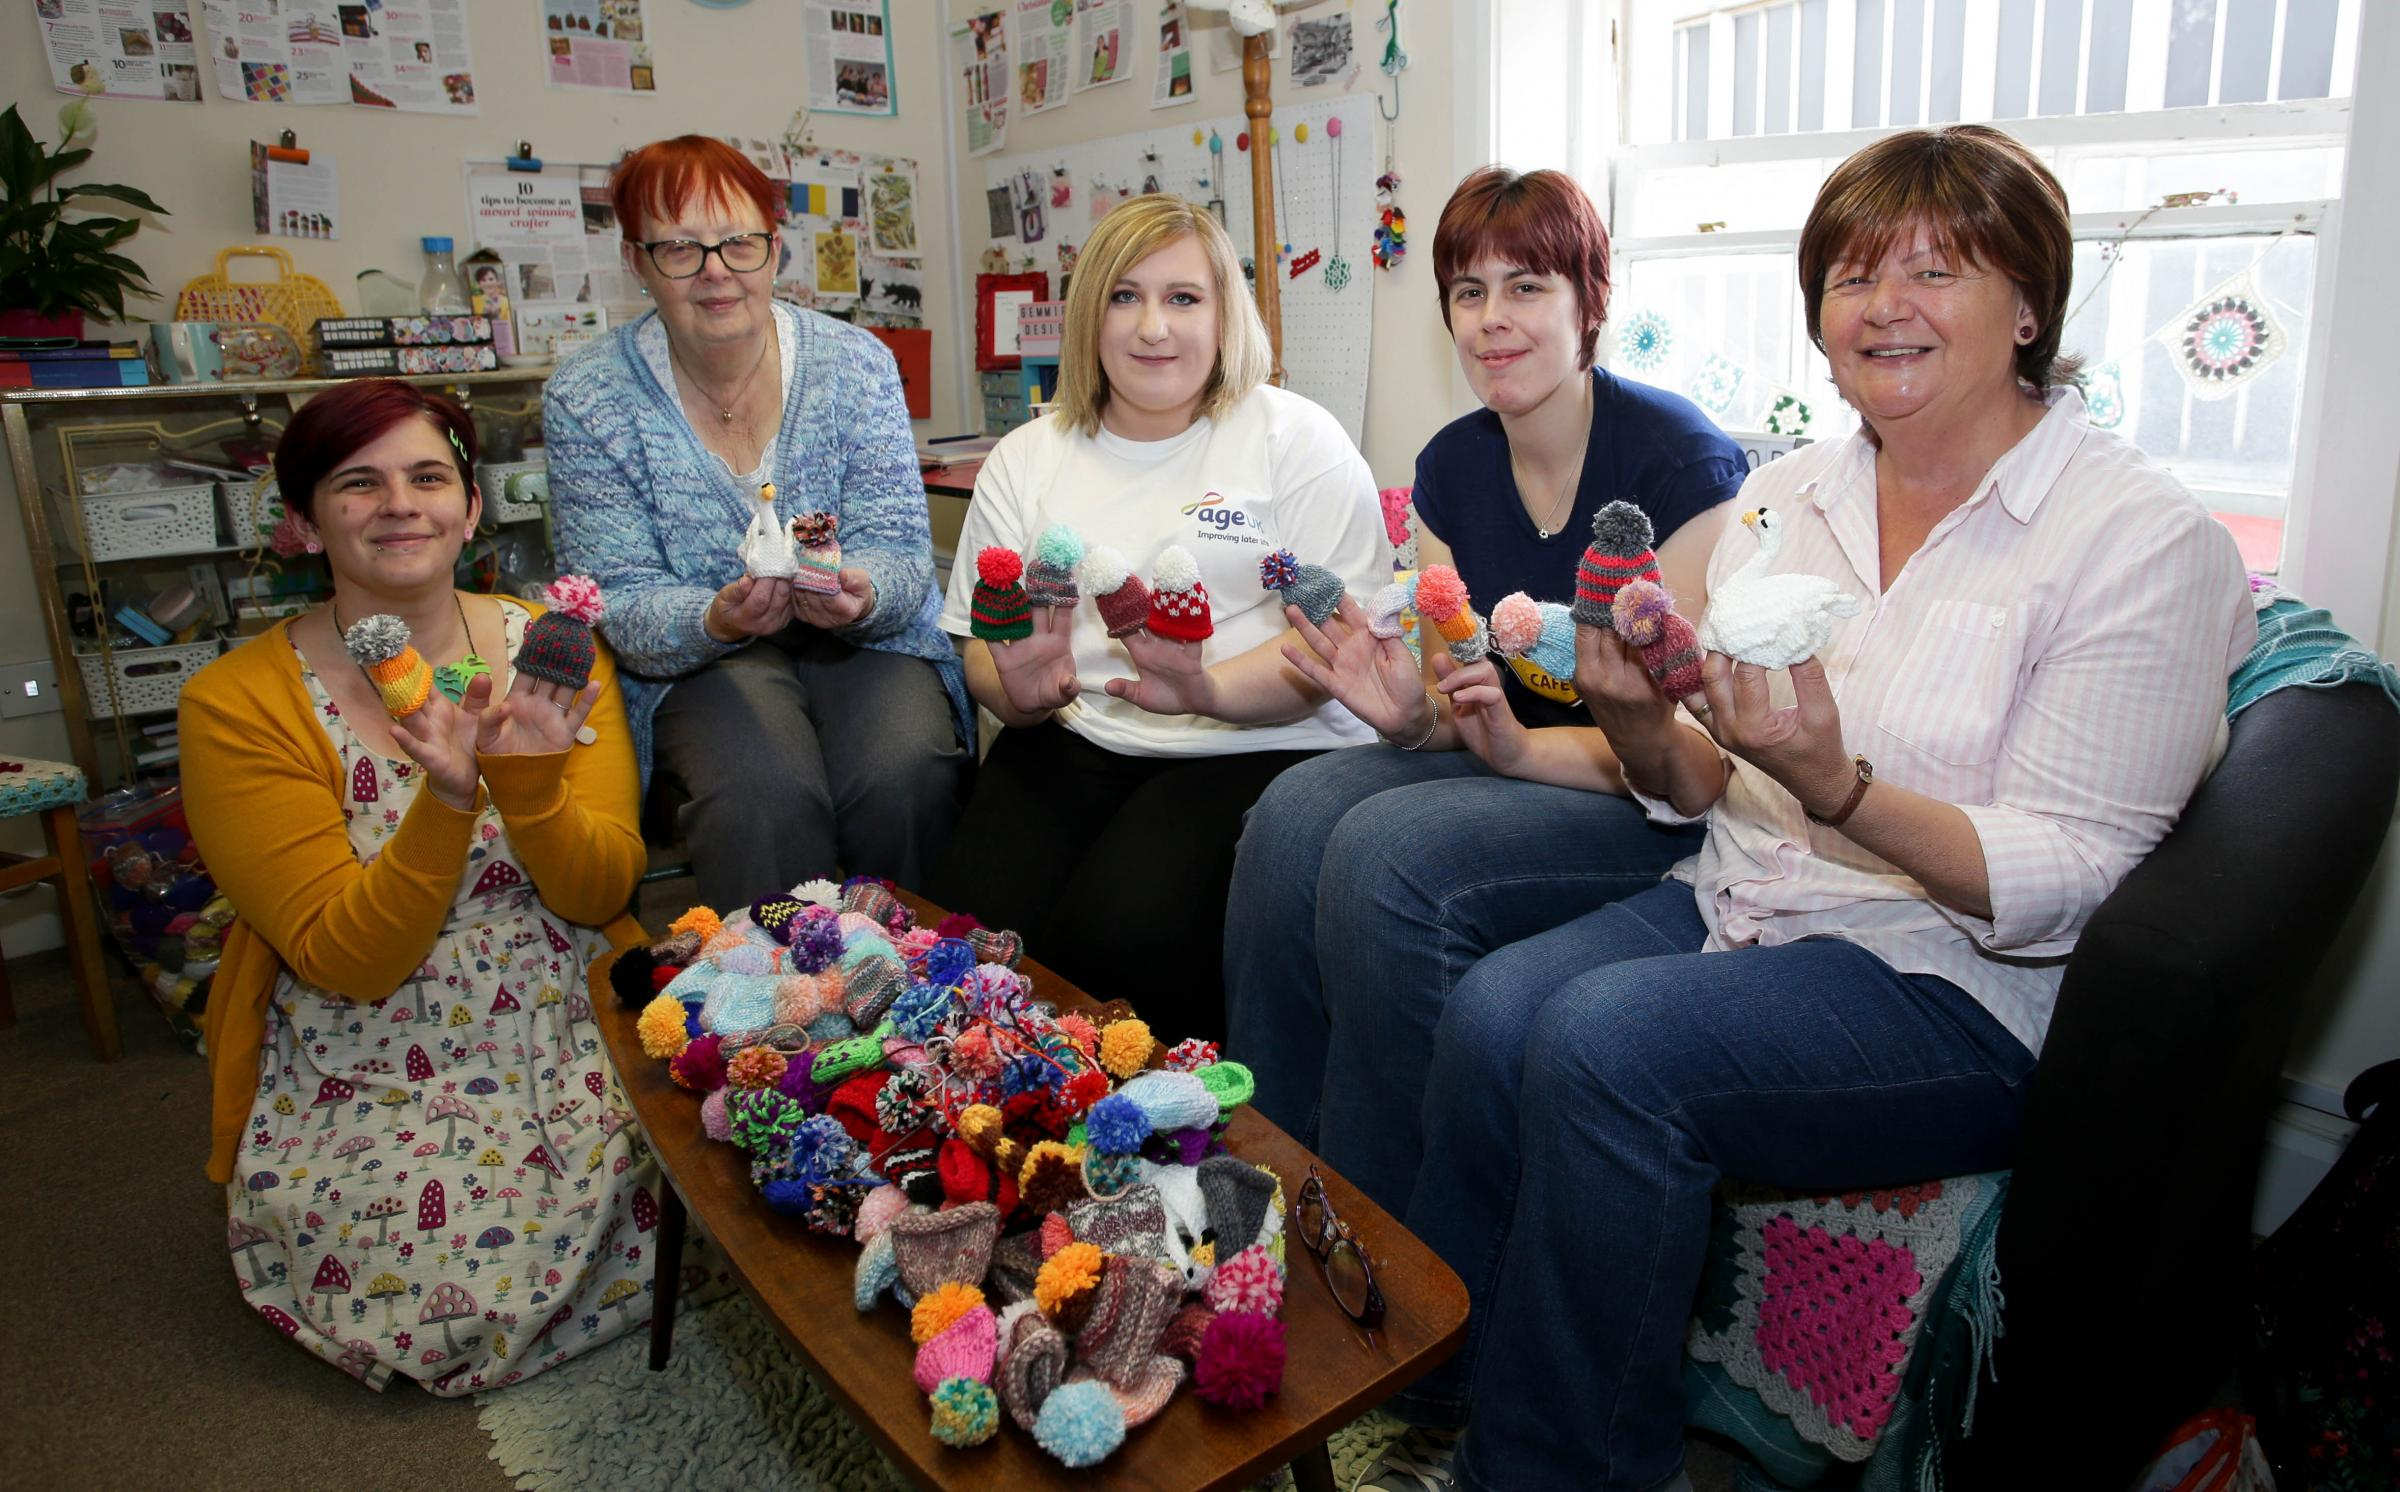 RM300818c.Gemmipops Designs, Willow Street Oswestry.A Big Knit along for Age UK -  knitting mini bobble hats to go on top of Innocent Smoothie Bottles..Gemma Bentley, Lilian Ashley, Angela Goodman (Age UK), Megan Richardson and Libby Manning.